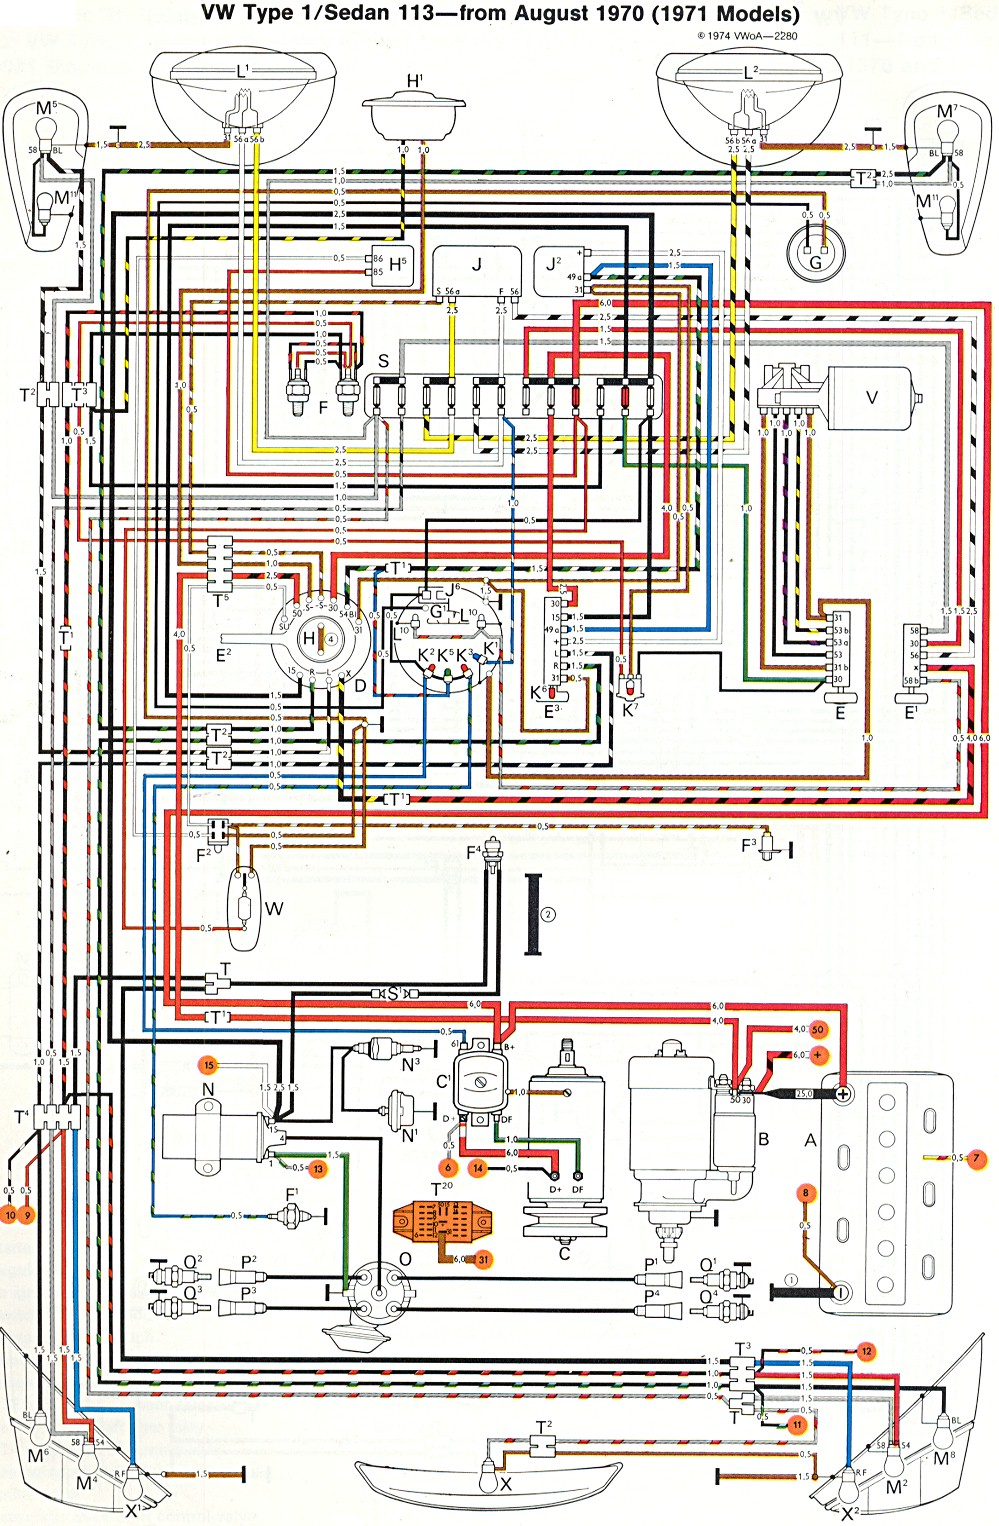 Volkswagen Super Beetle Wiring Diagram Simple Wiring Diagram VW Super Beetle  Steering Diagram 1973 Super Beetle Wiring Harness